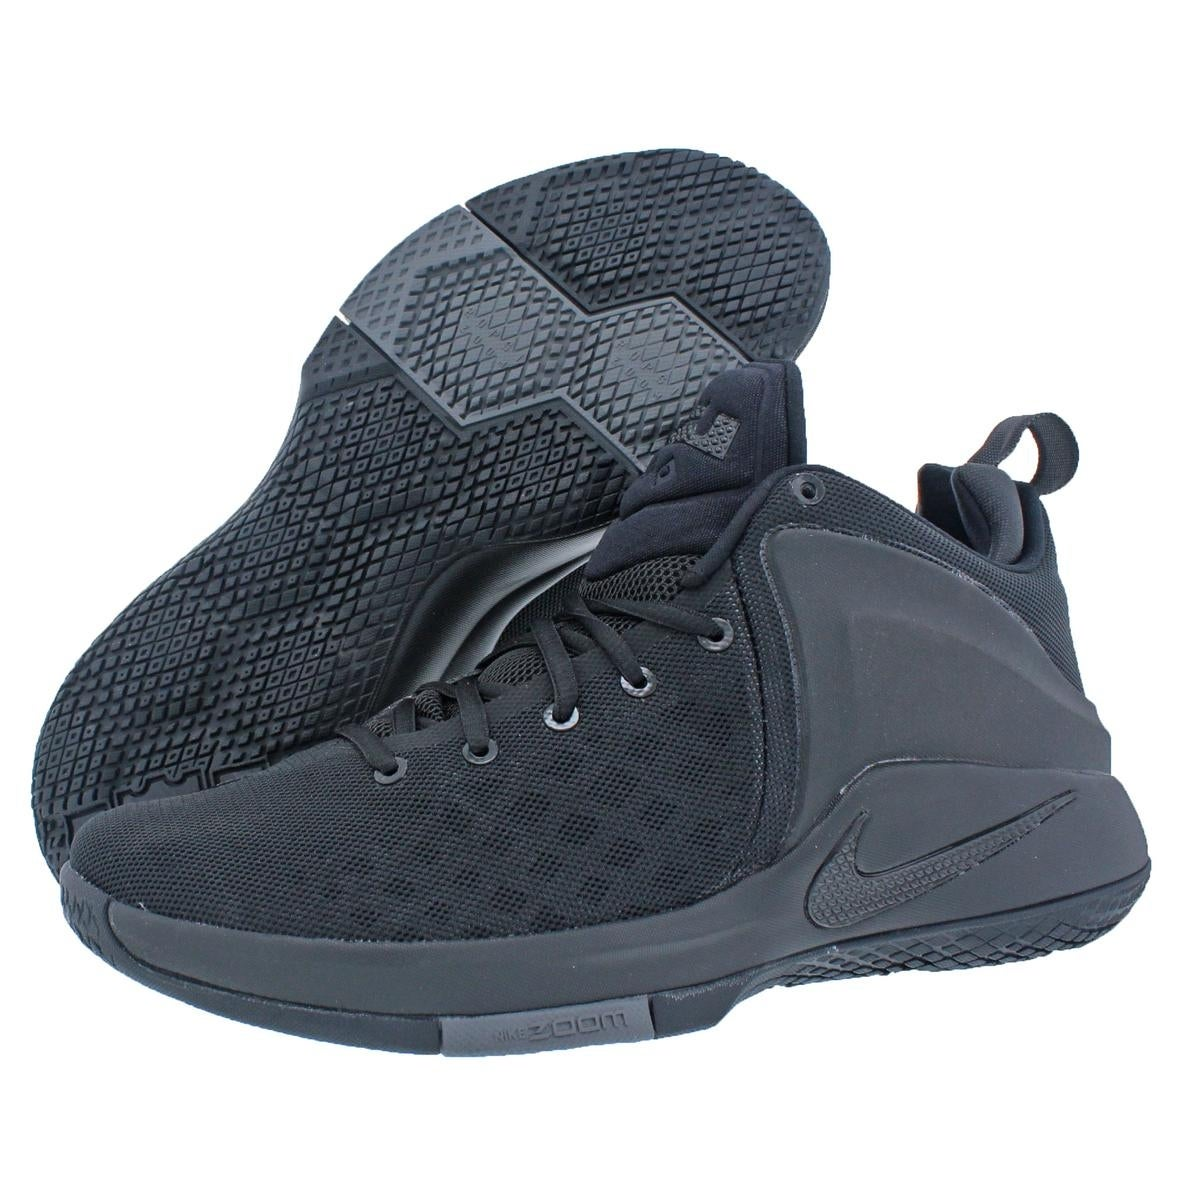 b7c58b8251d Shop Nike Mens Zoom Witness By LeBron James Basketball Shoes Lightweight  Mid-Top - Free Shipping Today - Overstock - 22311432